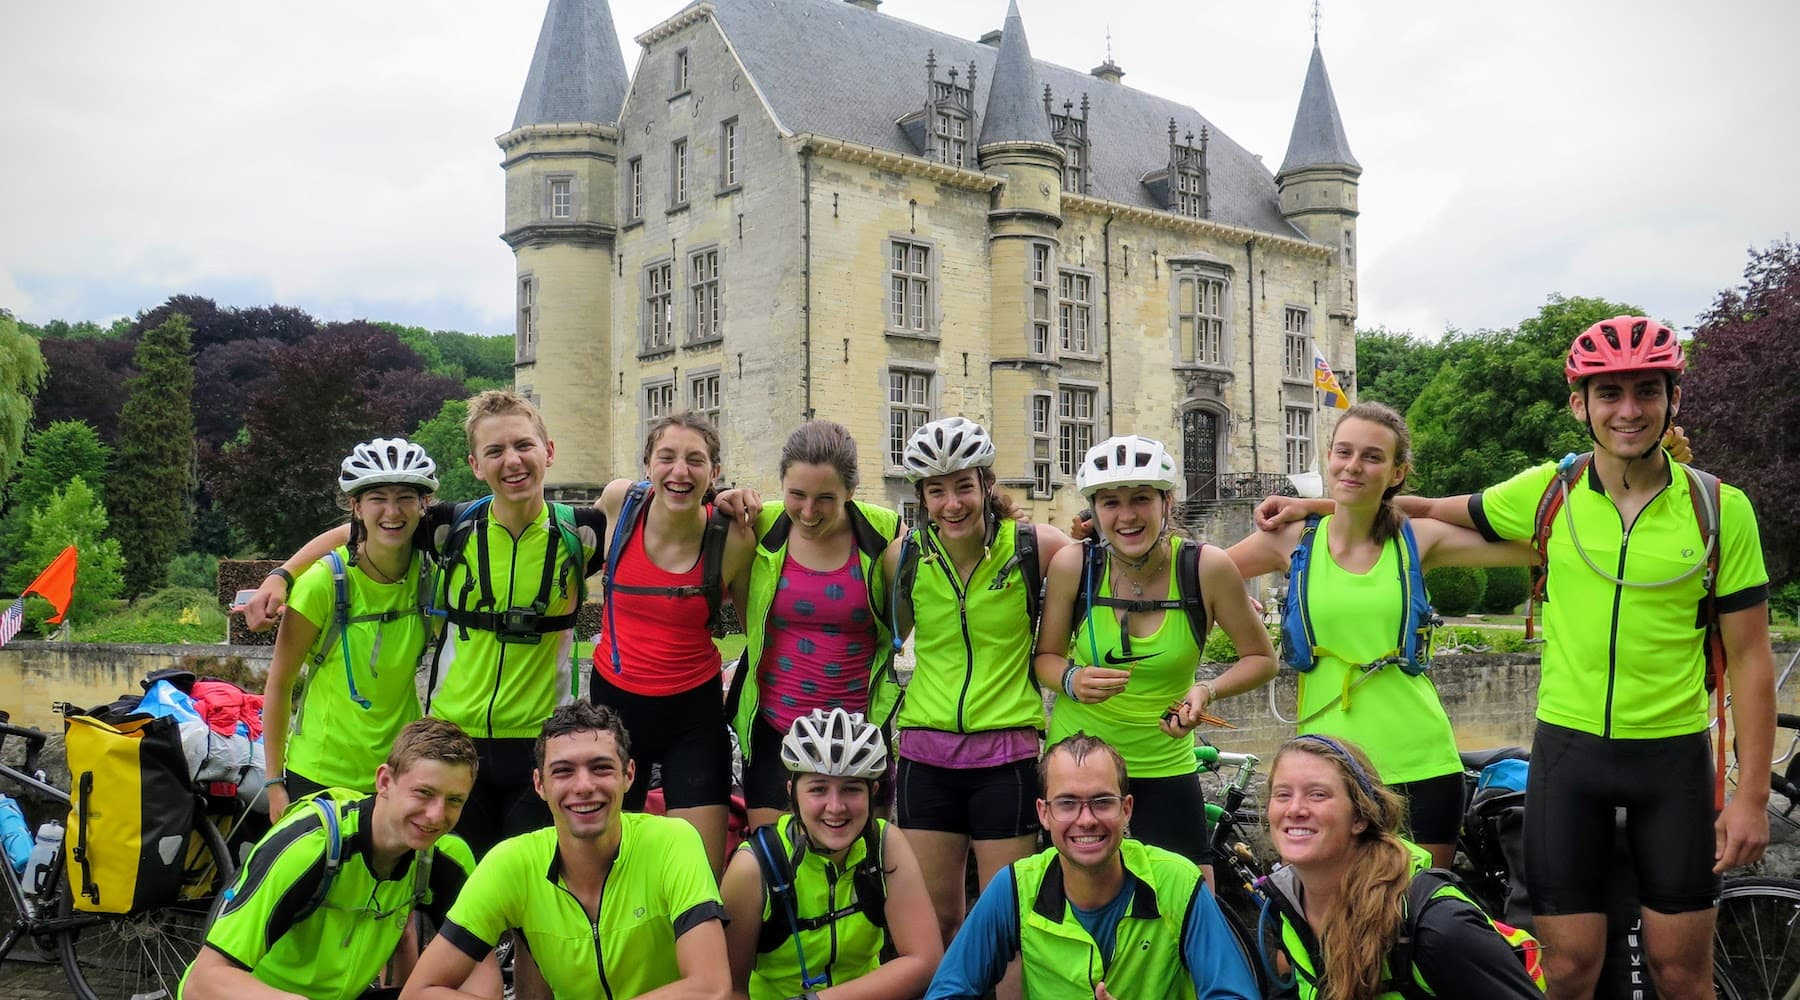 A group of teens on a summer biking trip headed into the Alps